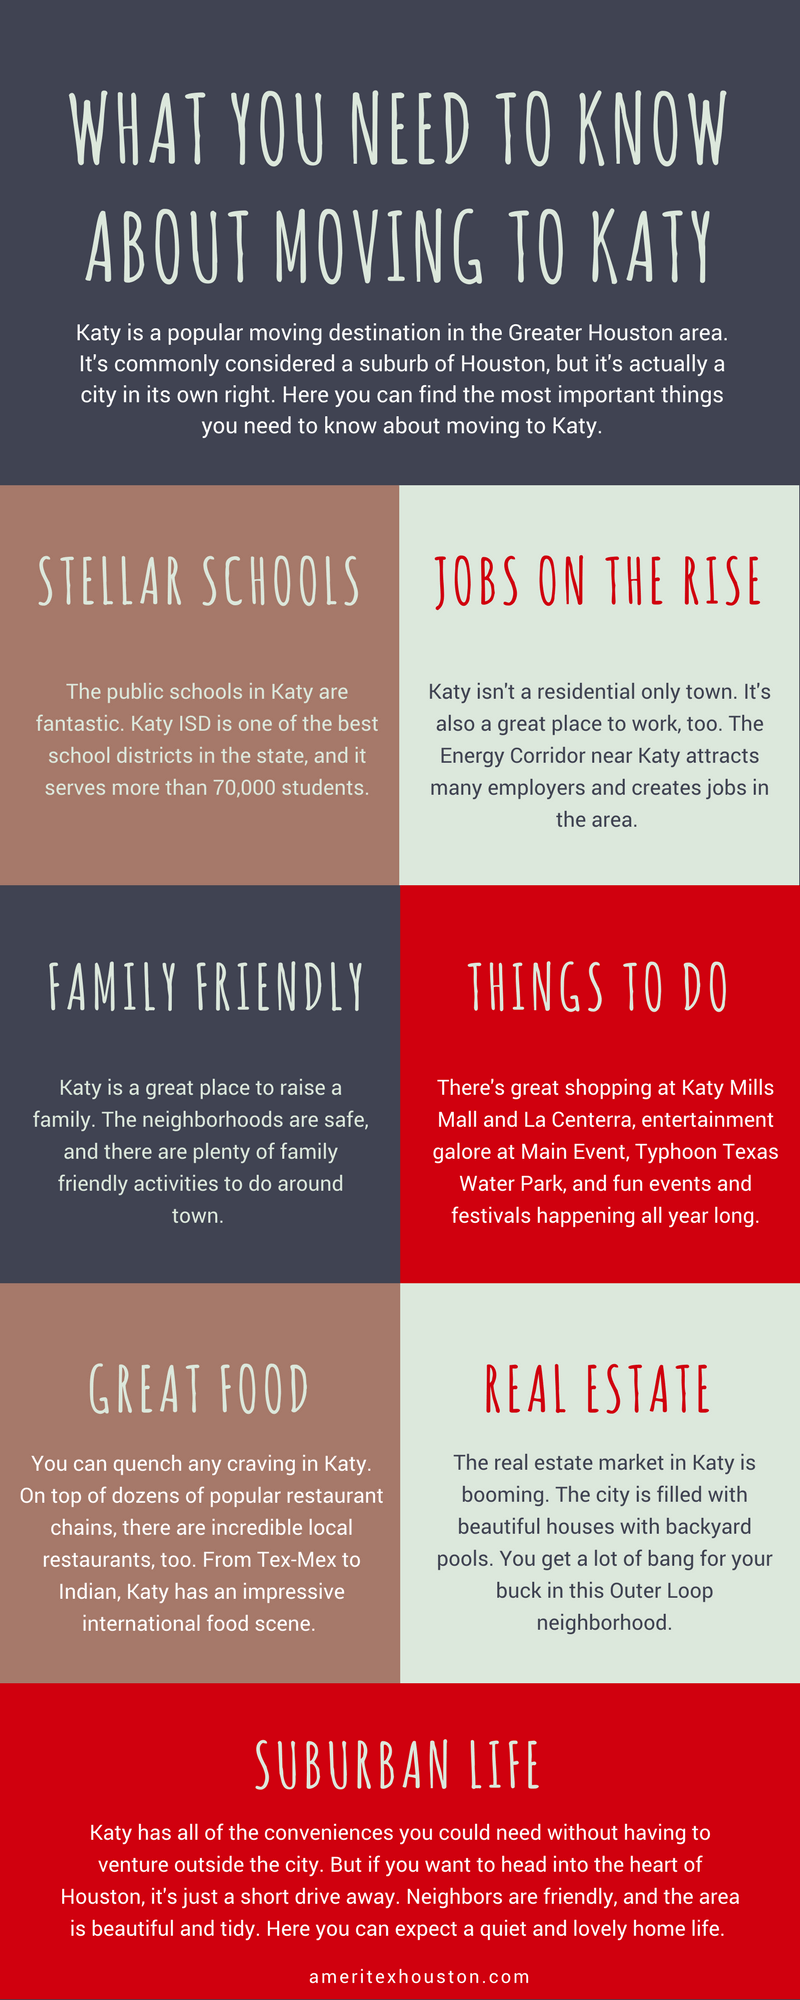 moving to katy infographic